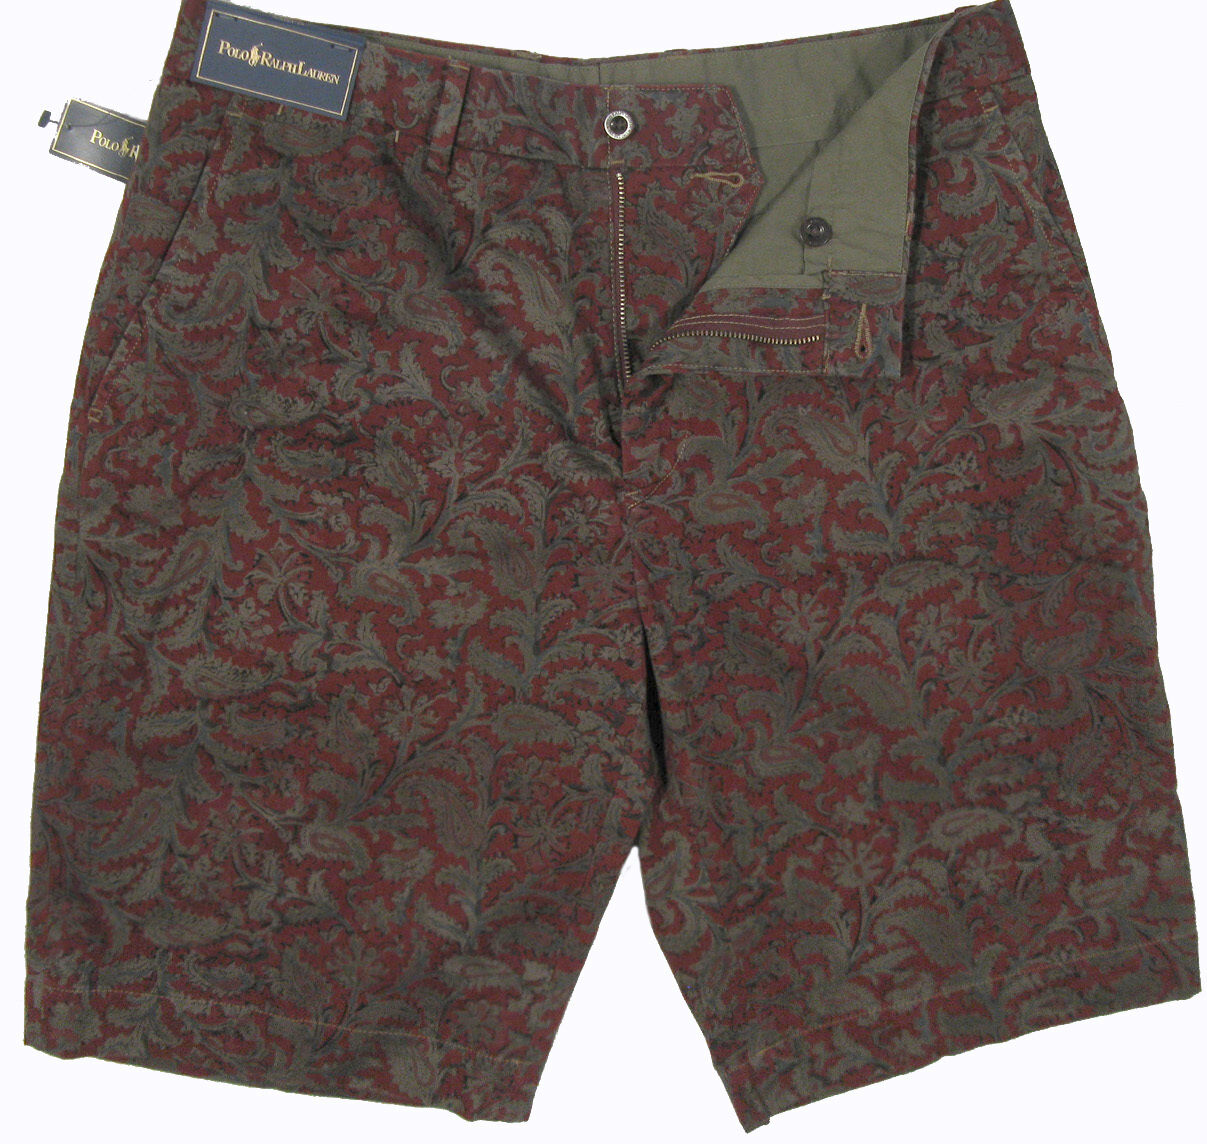 NEW  Polo Ralph Lauren Handsome Paisley Shorts   38  Burgundy & Olive Print